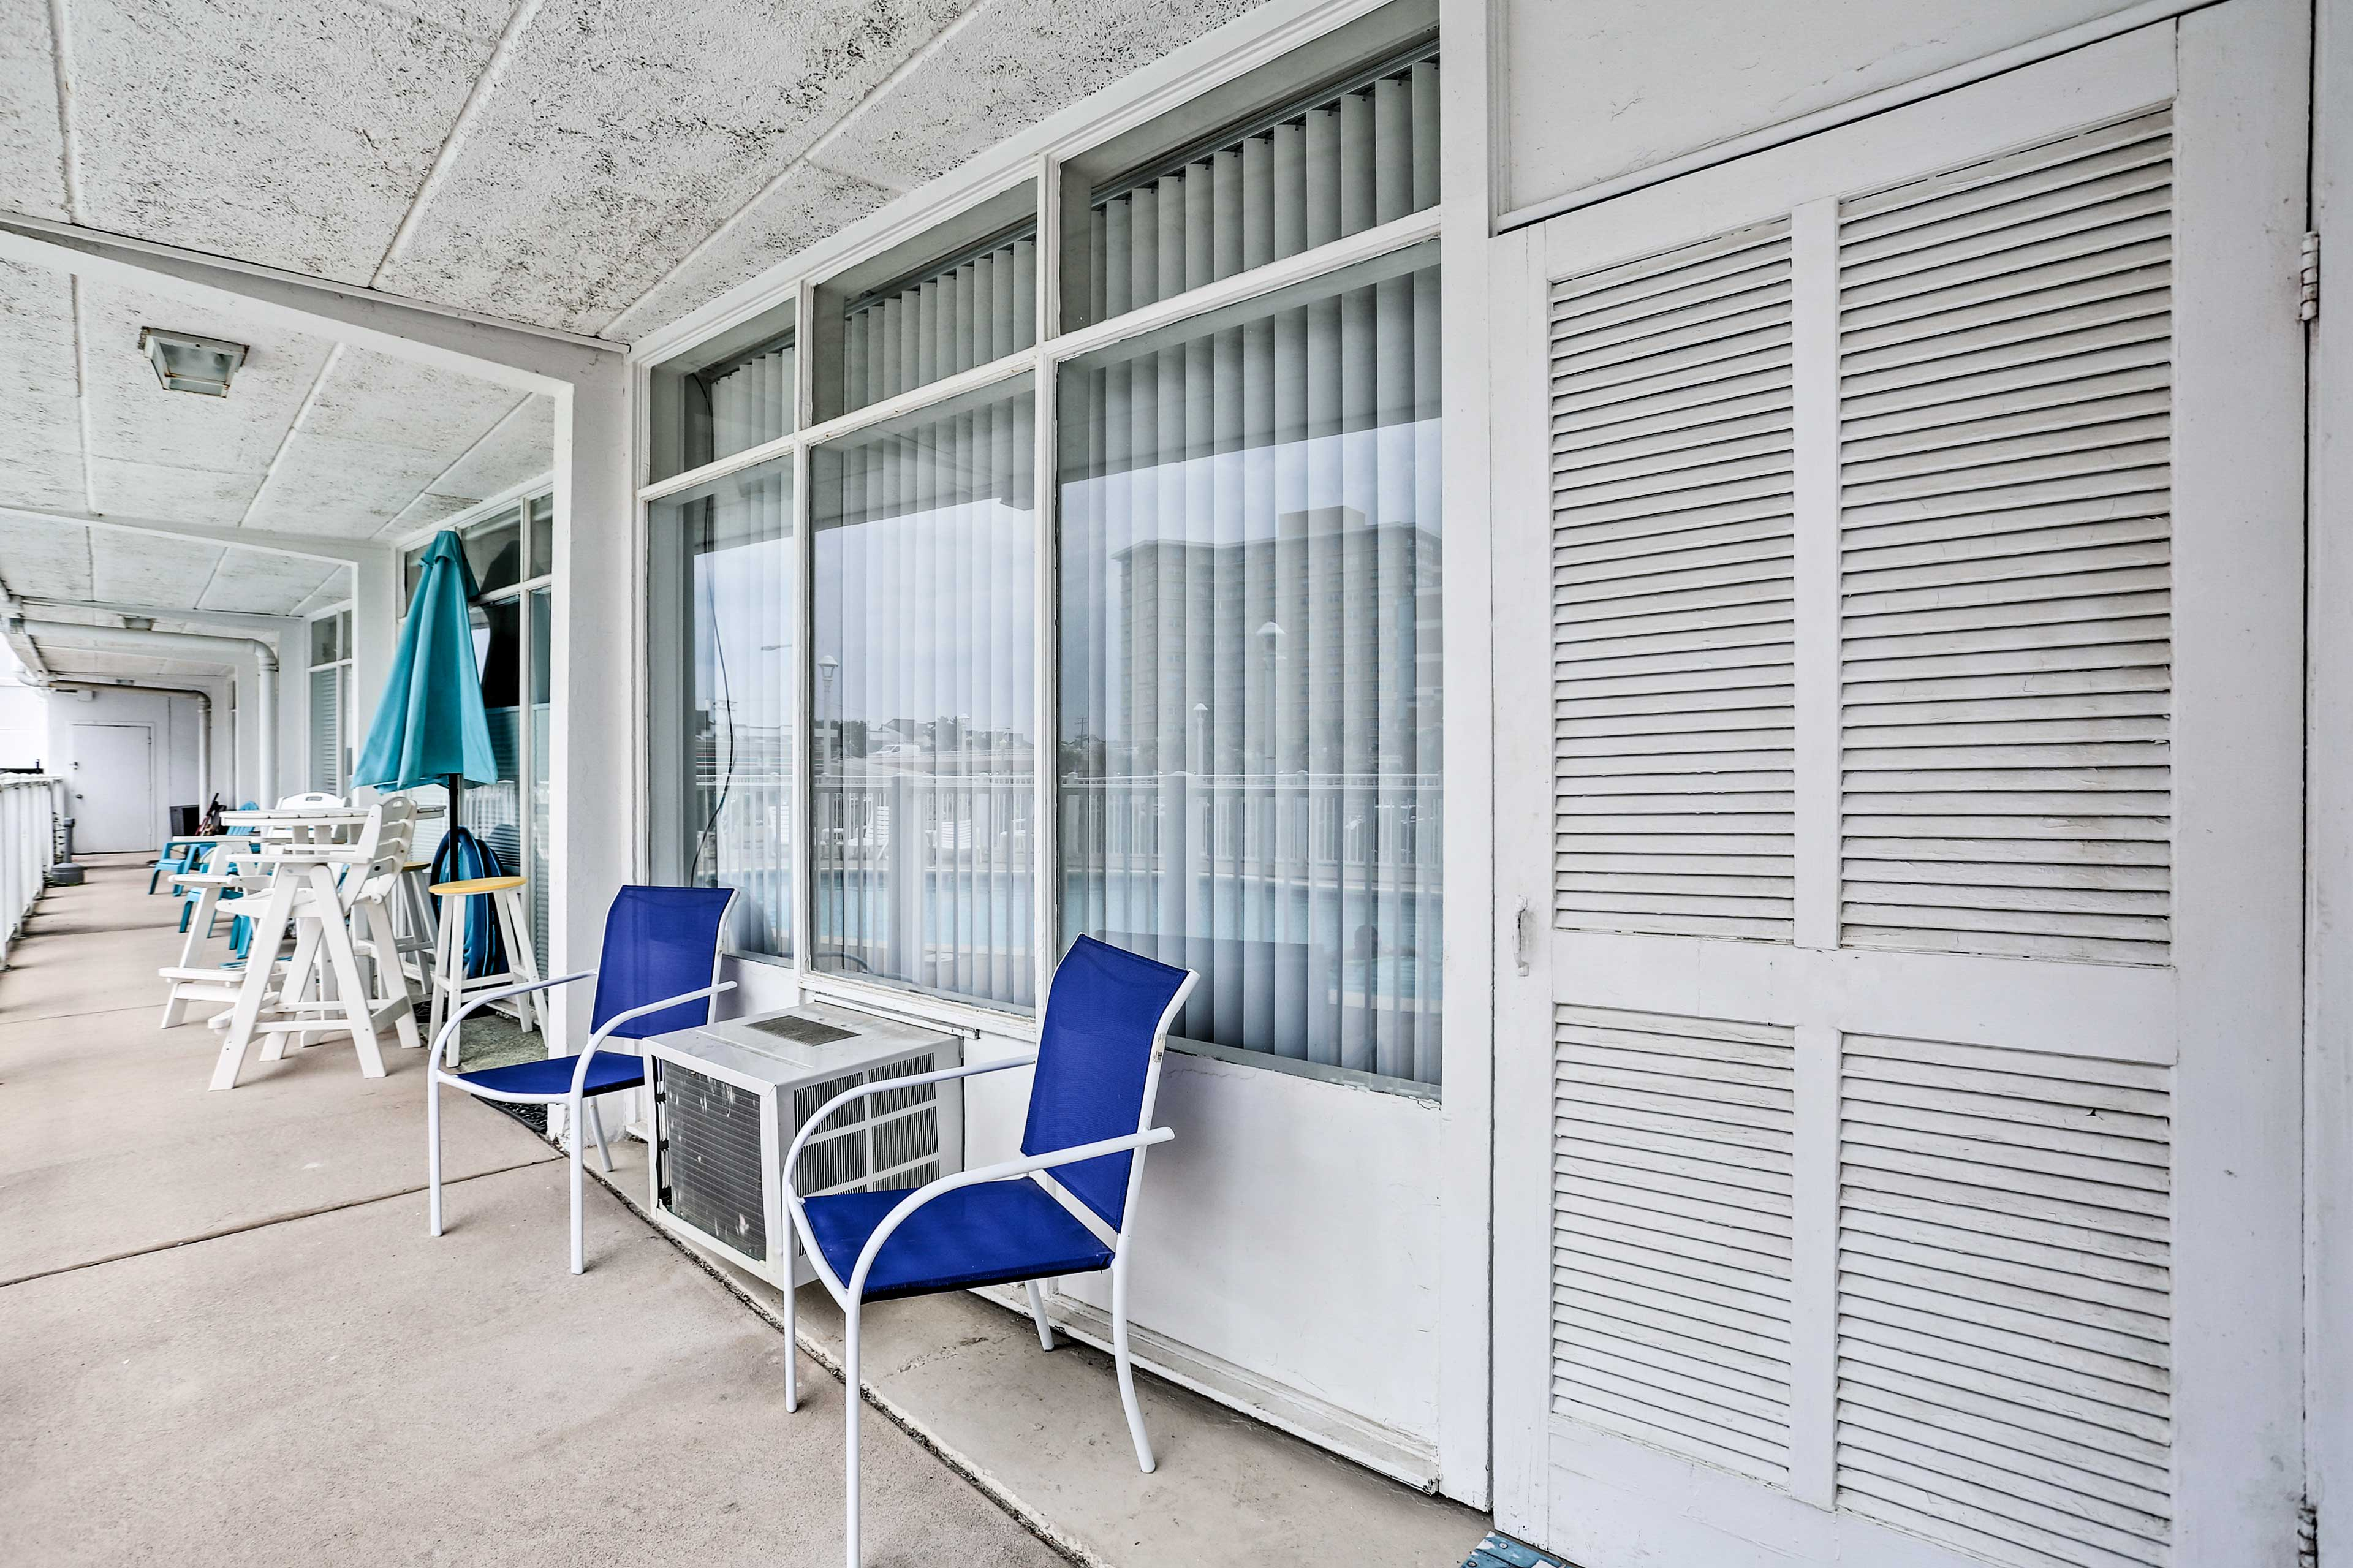 Boast about your patio spot overlooking the pool at this studio!